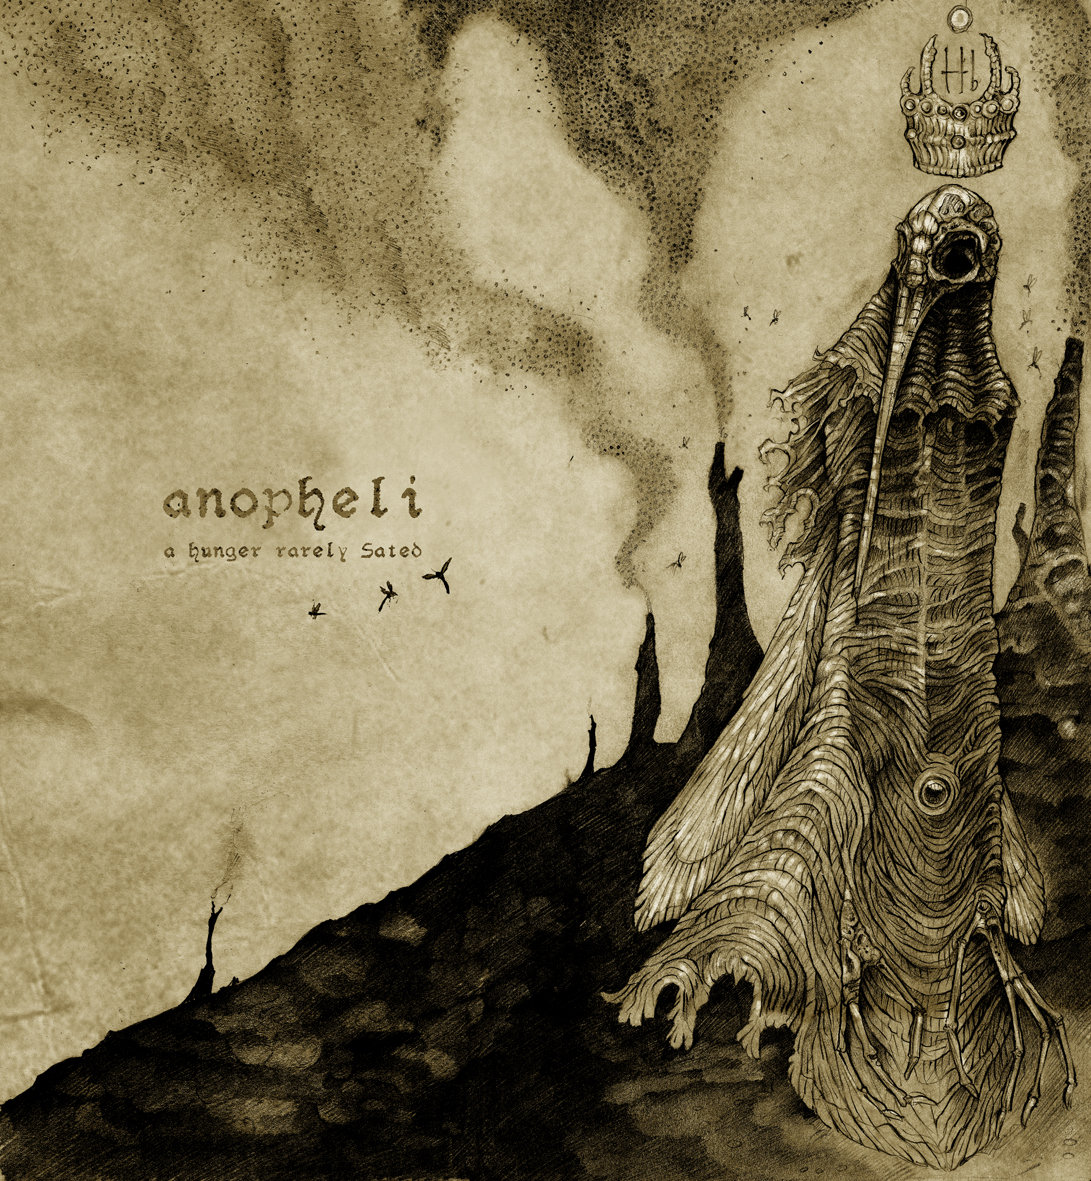 Anopheli - A Hunger Rarely Sated